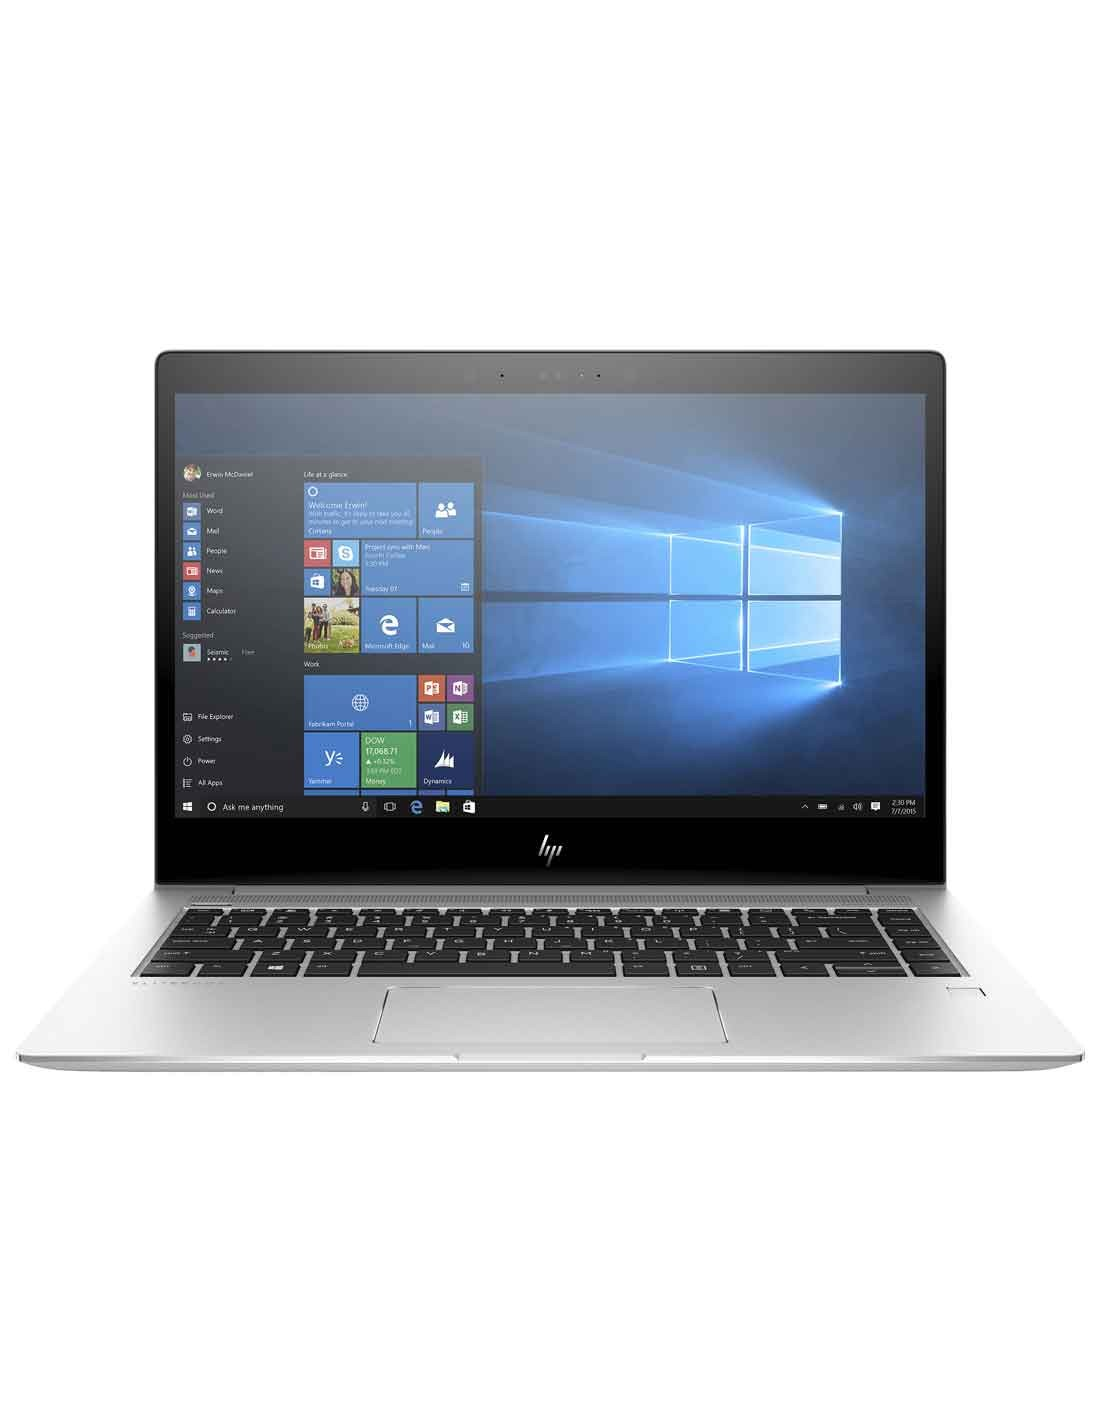 HP EliteBook 1040 G4 Notebook at the cheapest price and fast free delivery in Dubai